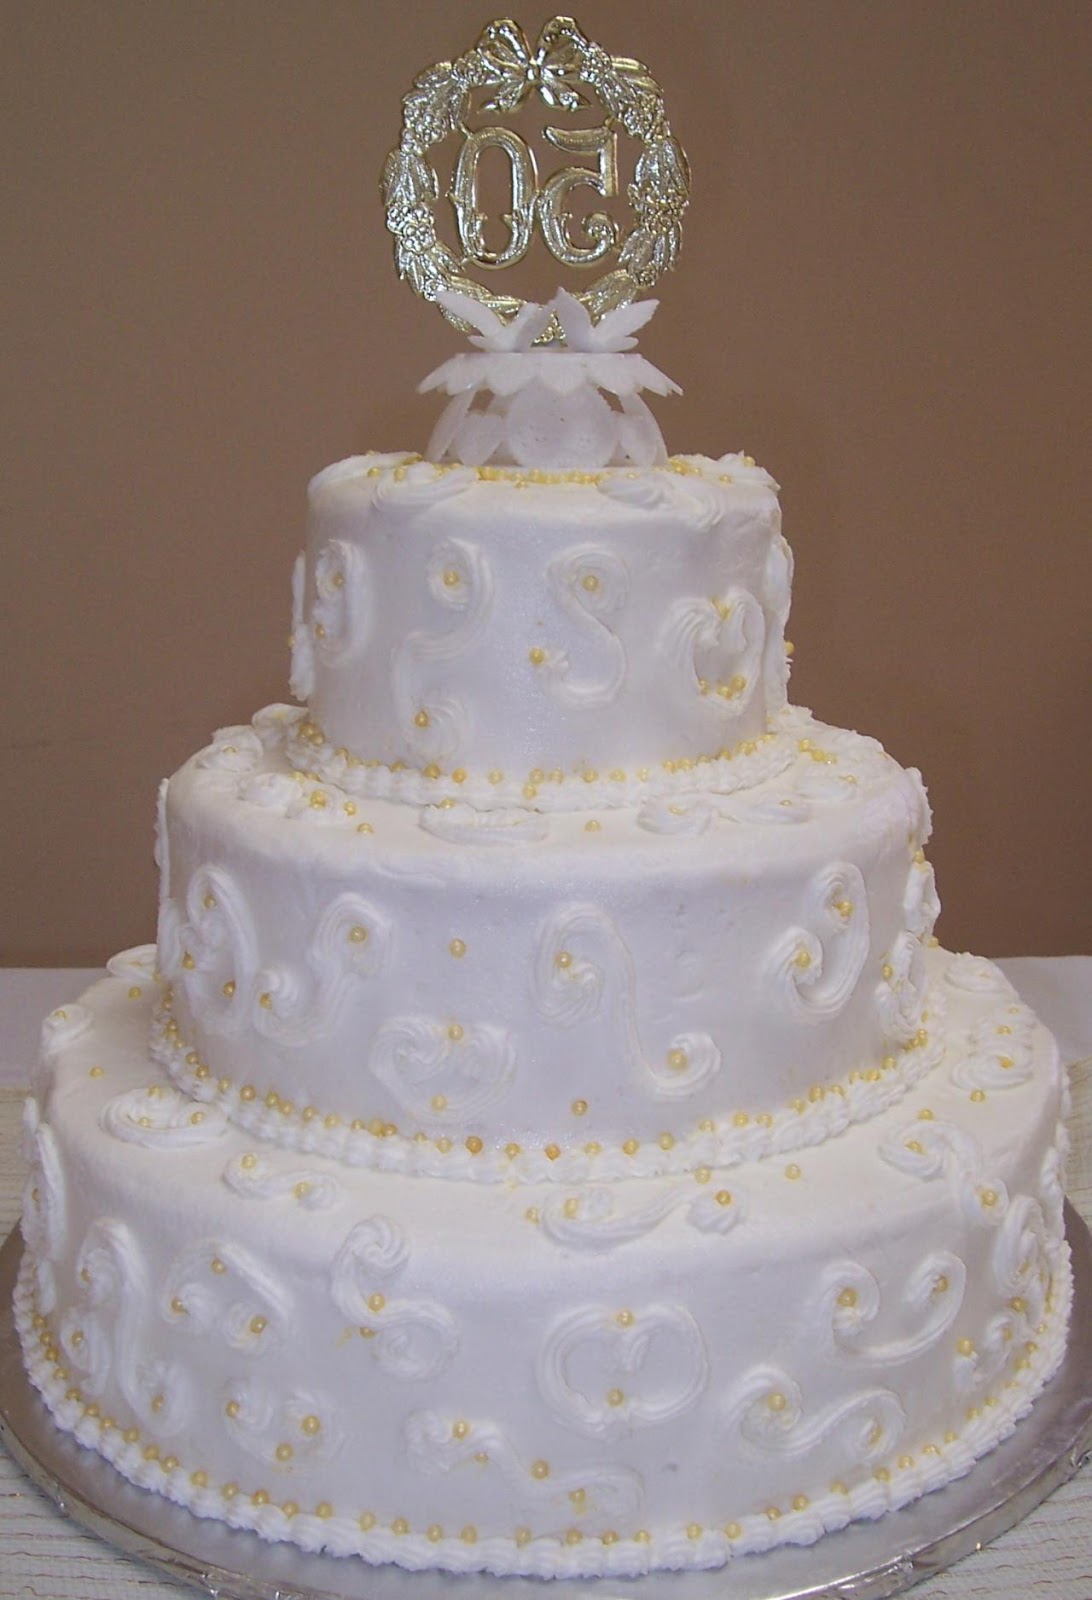 vinnie 39 s blog 50th wedding anniversary cakes. Black Bedroom Furniture Sets. Home Design Ideas